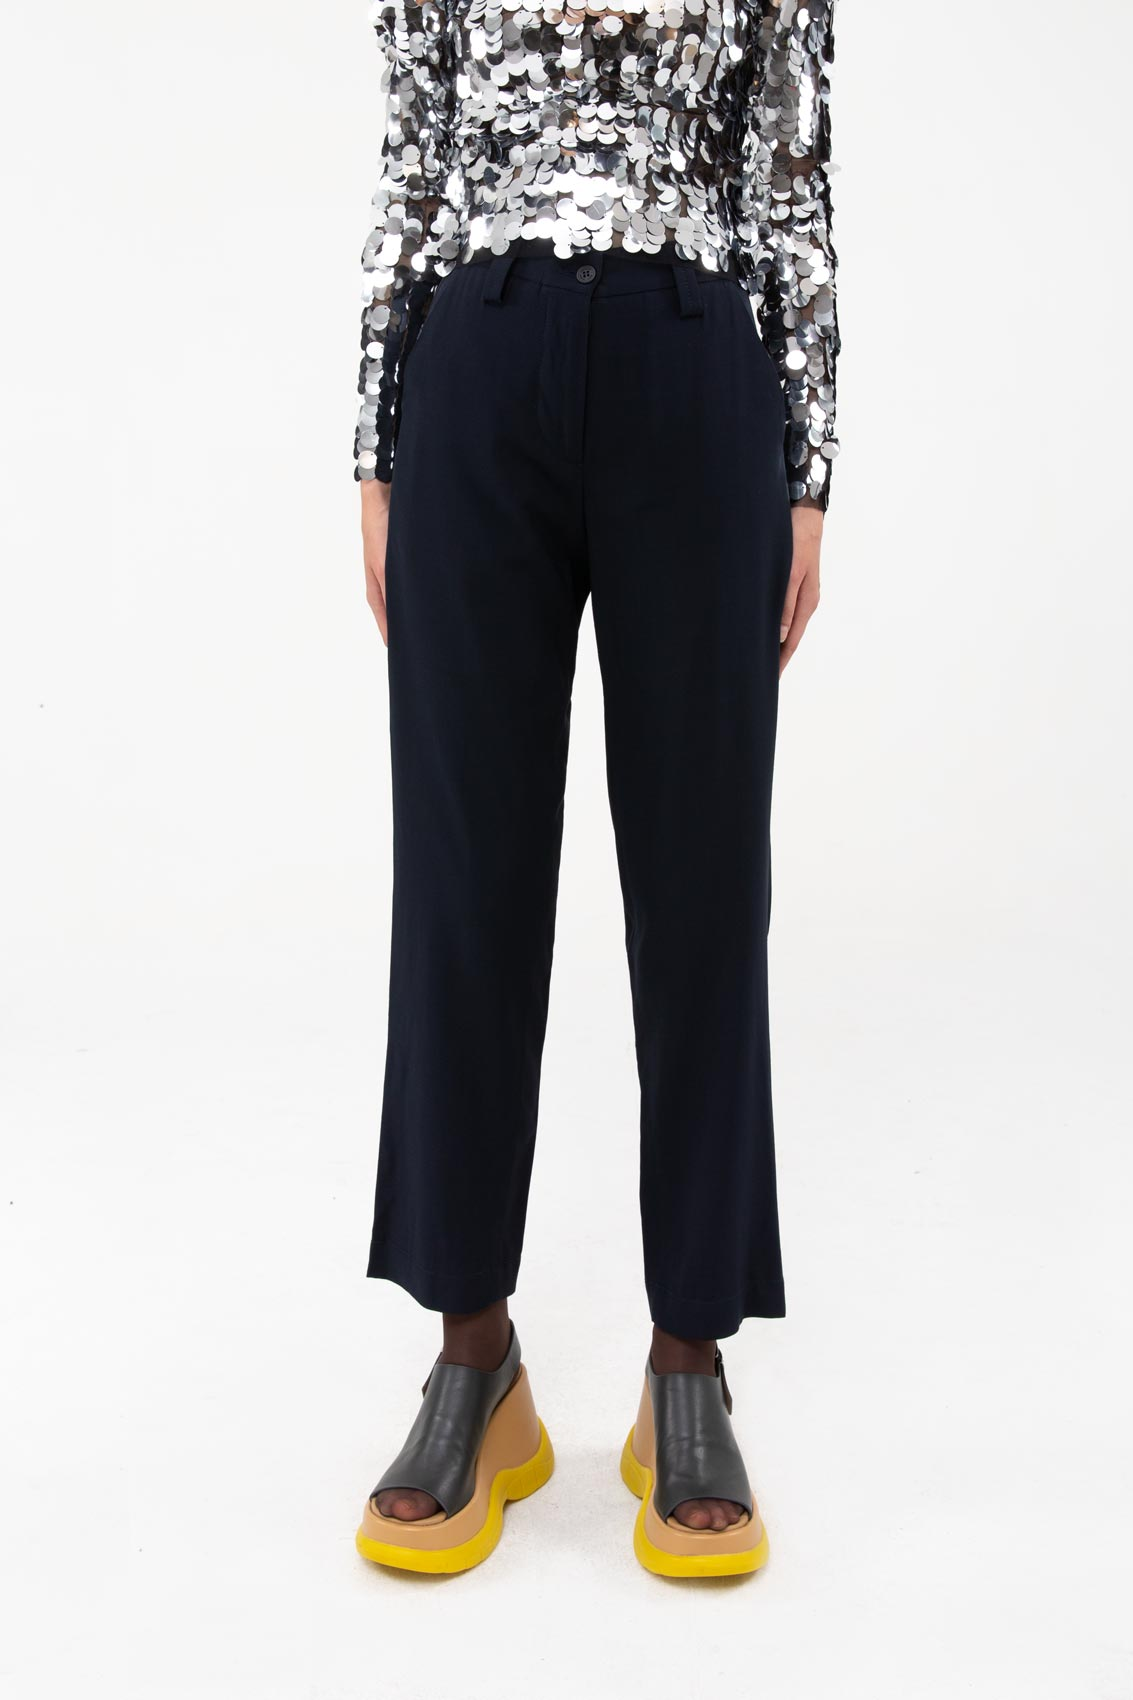 DARK BLUE STRAIGHT PANTS